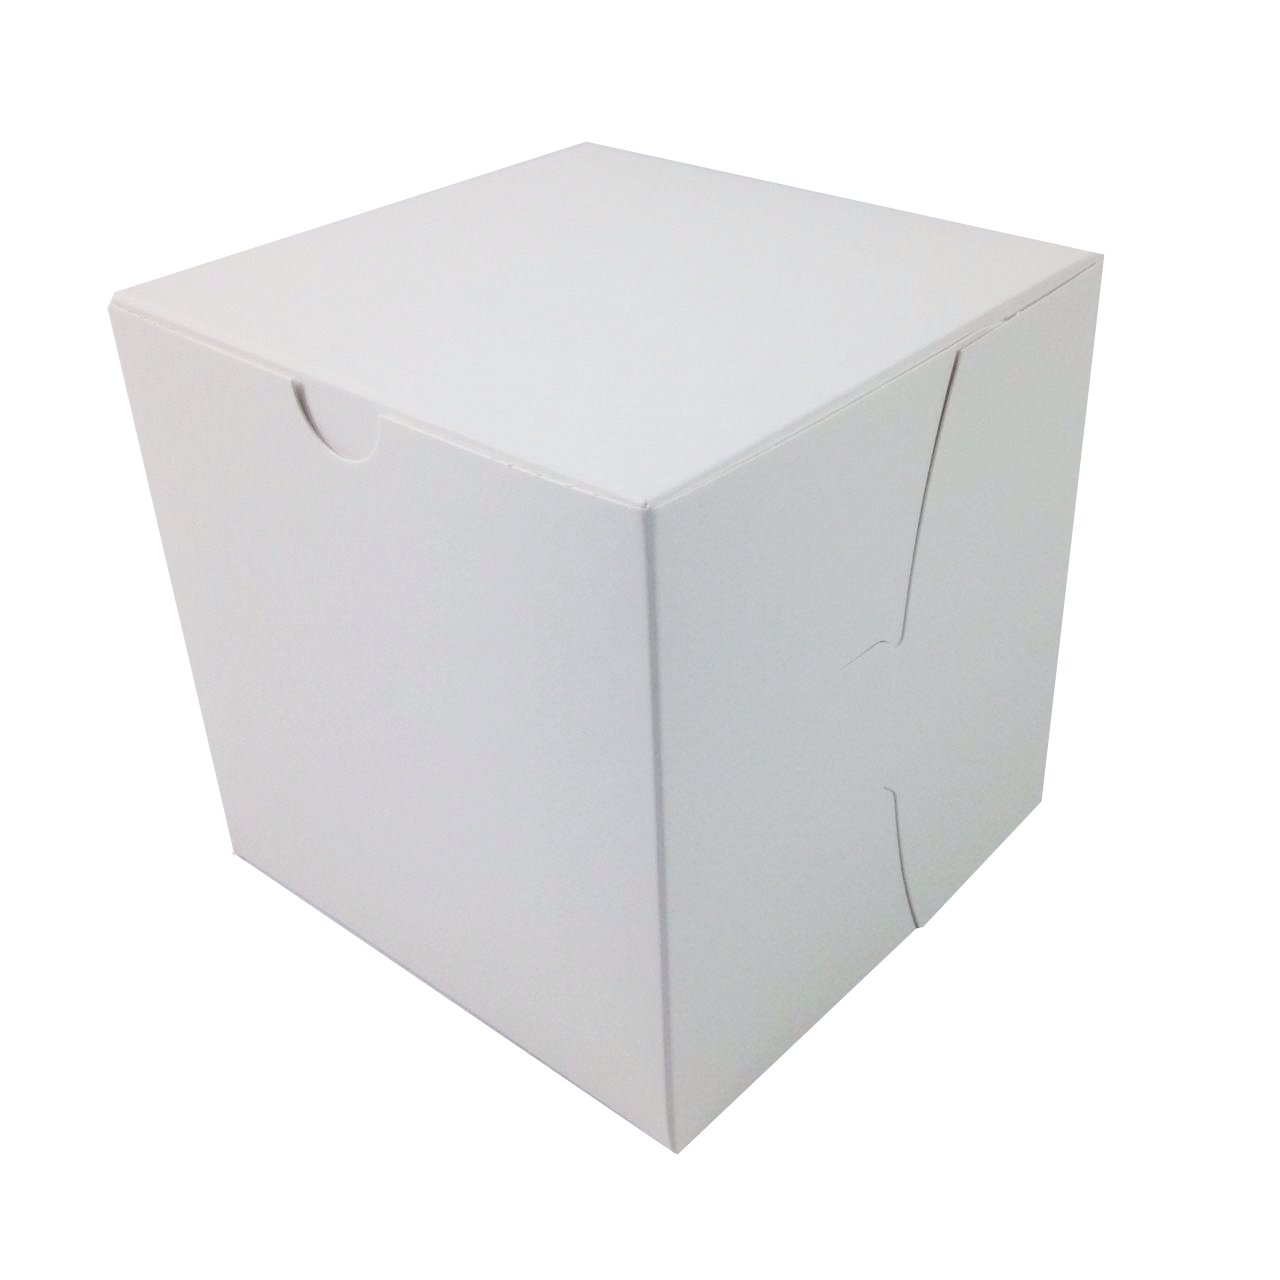 Black Cat Avenue 6'' x 6'' x 6'' White Bakery Cake Boxes Non-Window Paperboard Gift Boxes, 5 Count